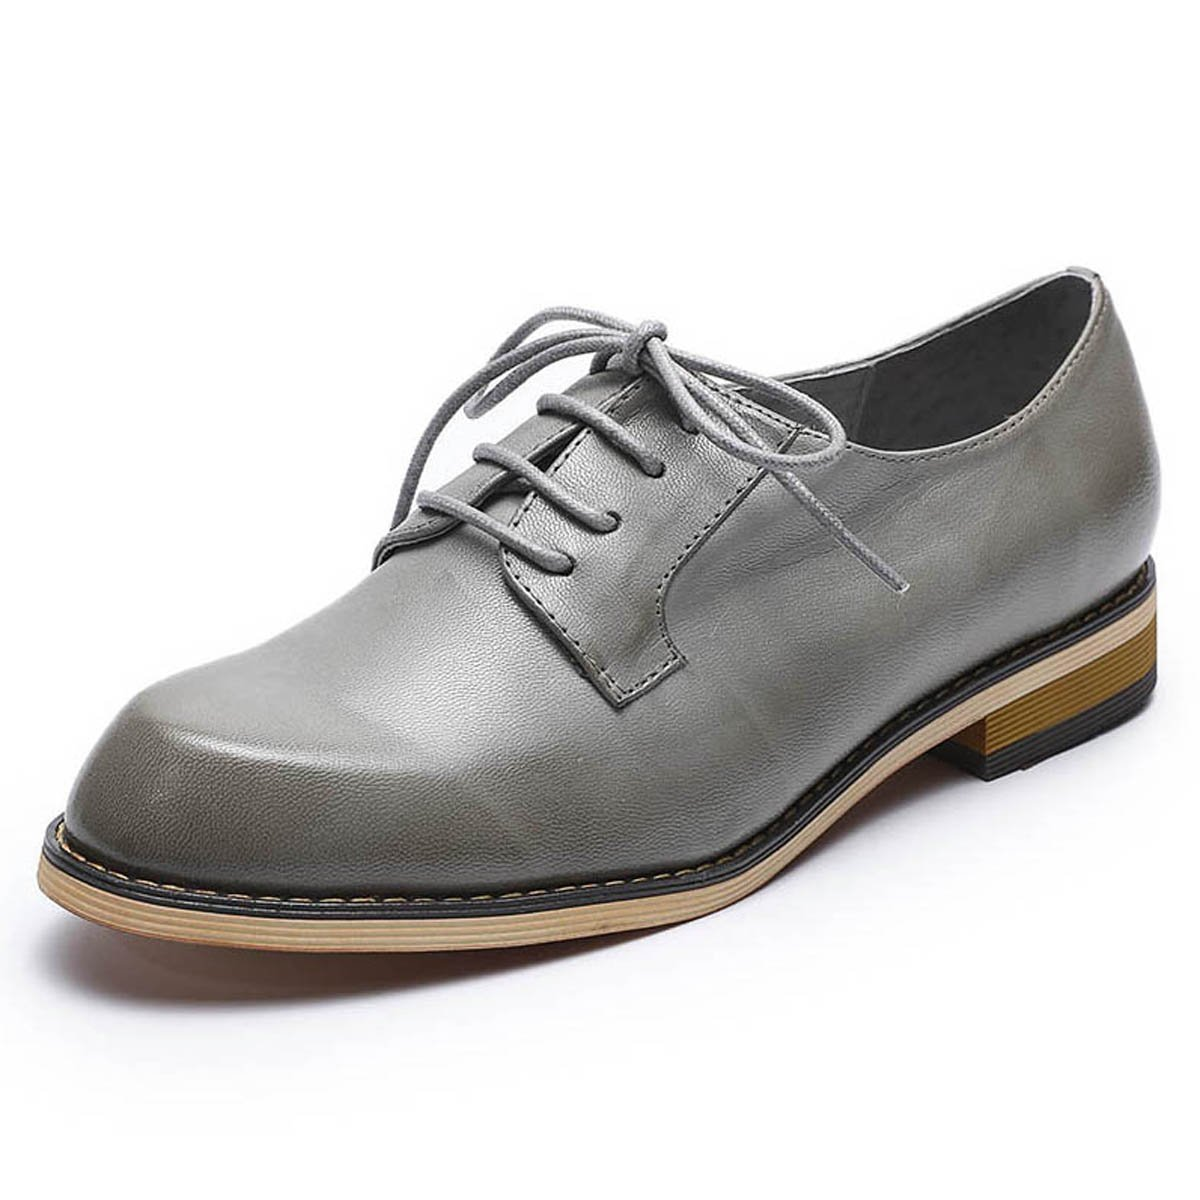 d89a33190d Galleon - Mona Flying Women's Leather Perforated Lace-up Oxfords Brogue  Wingtip Derby Shoes (8 B(M) US, Grey)